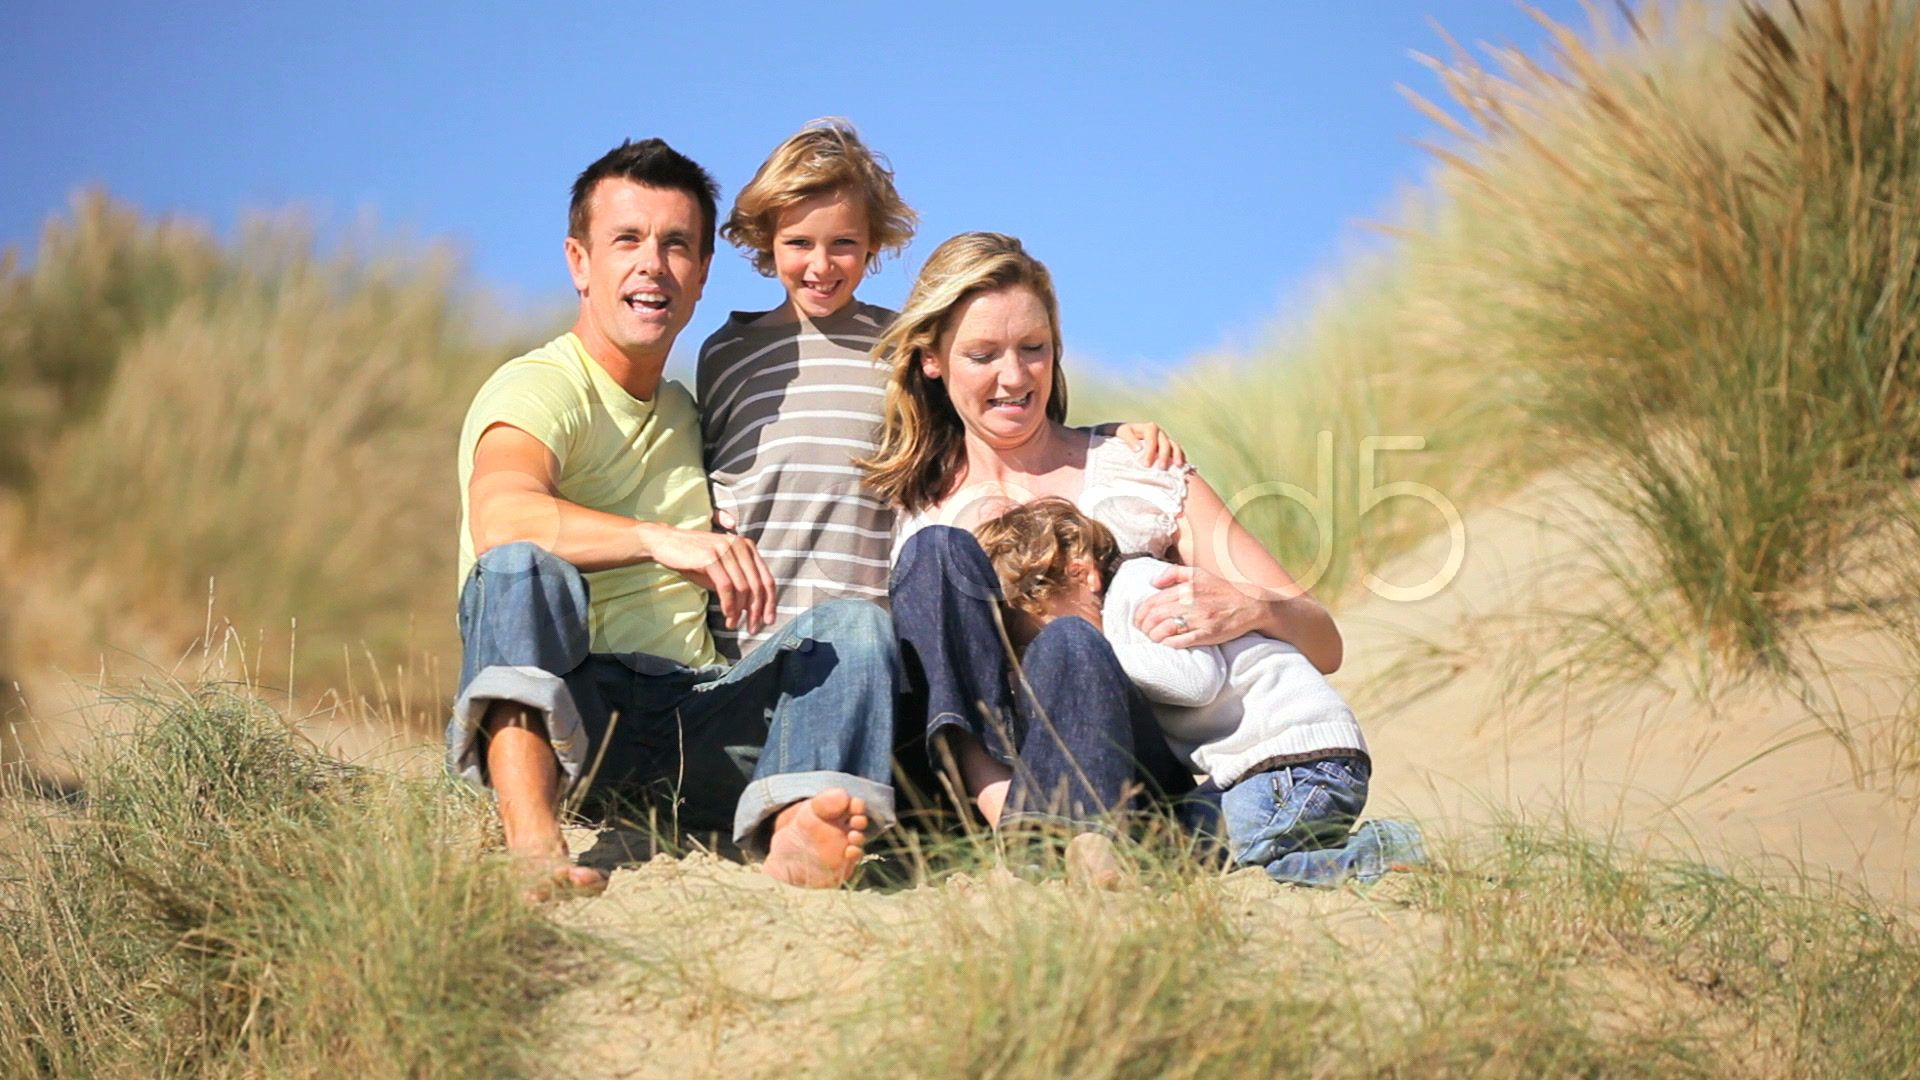 Happy Family Vacation Time Stock Footage Vacation Family Happy Footage Family Vacations Usa Family Vacation Packing Family Vacation